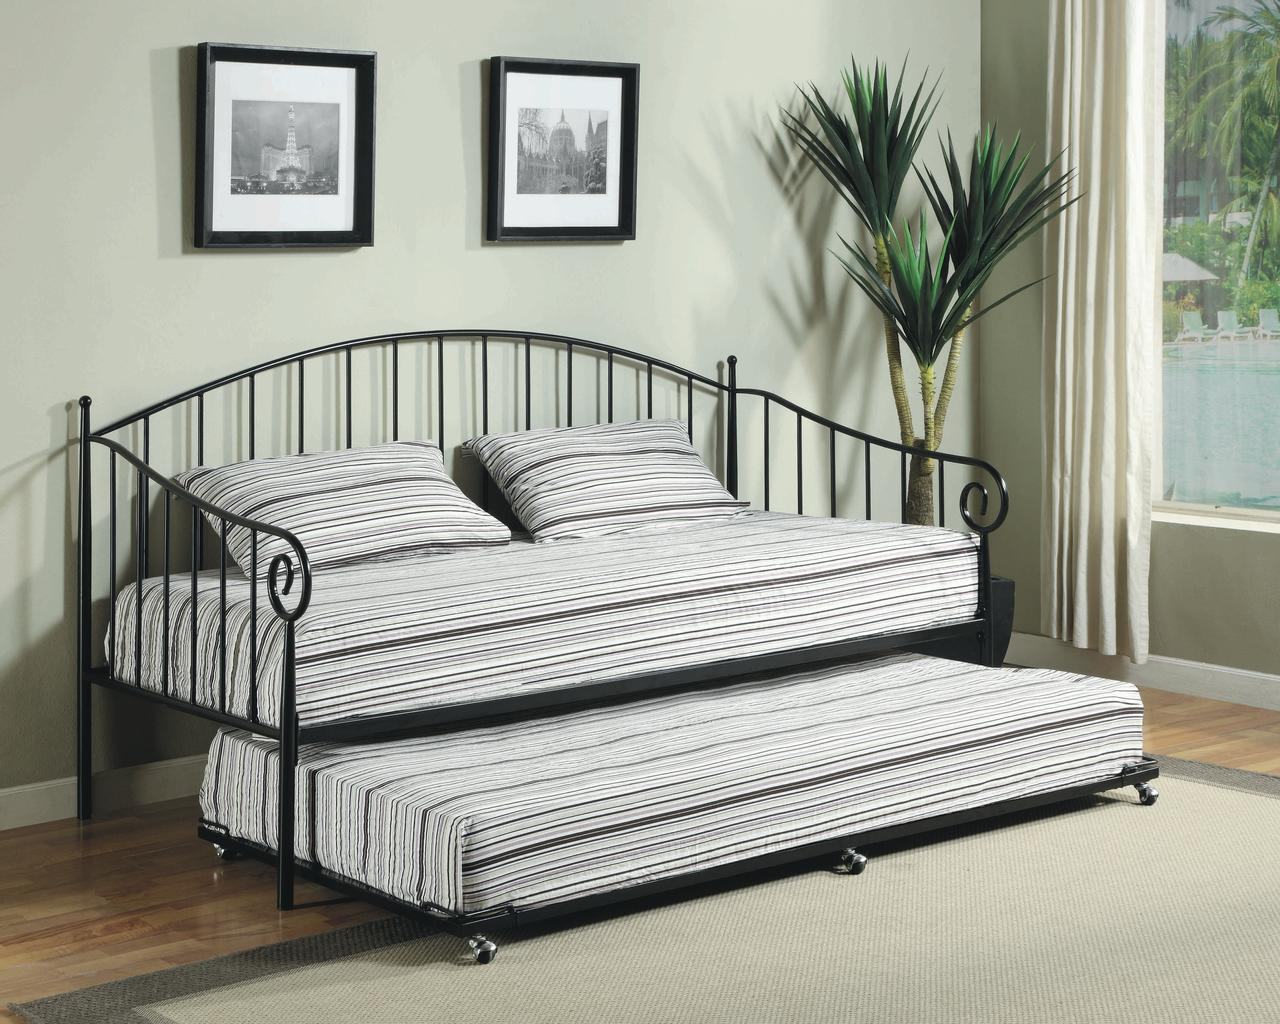 twin size white metal day bed frame with rollout trundle headboard footboard rails u0026 slats twin daybed u0026 trundle walmartcom